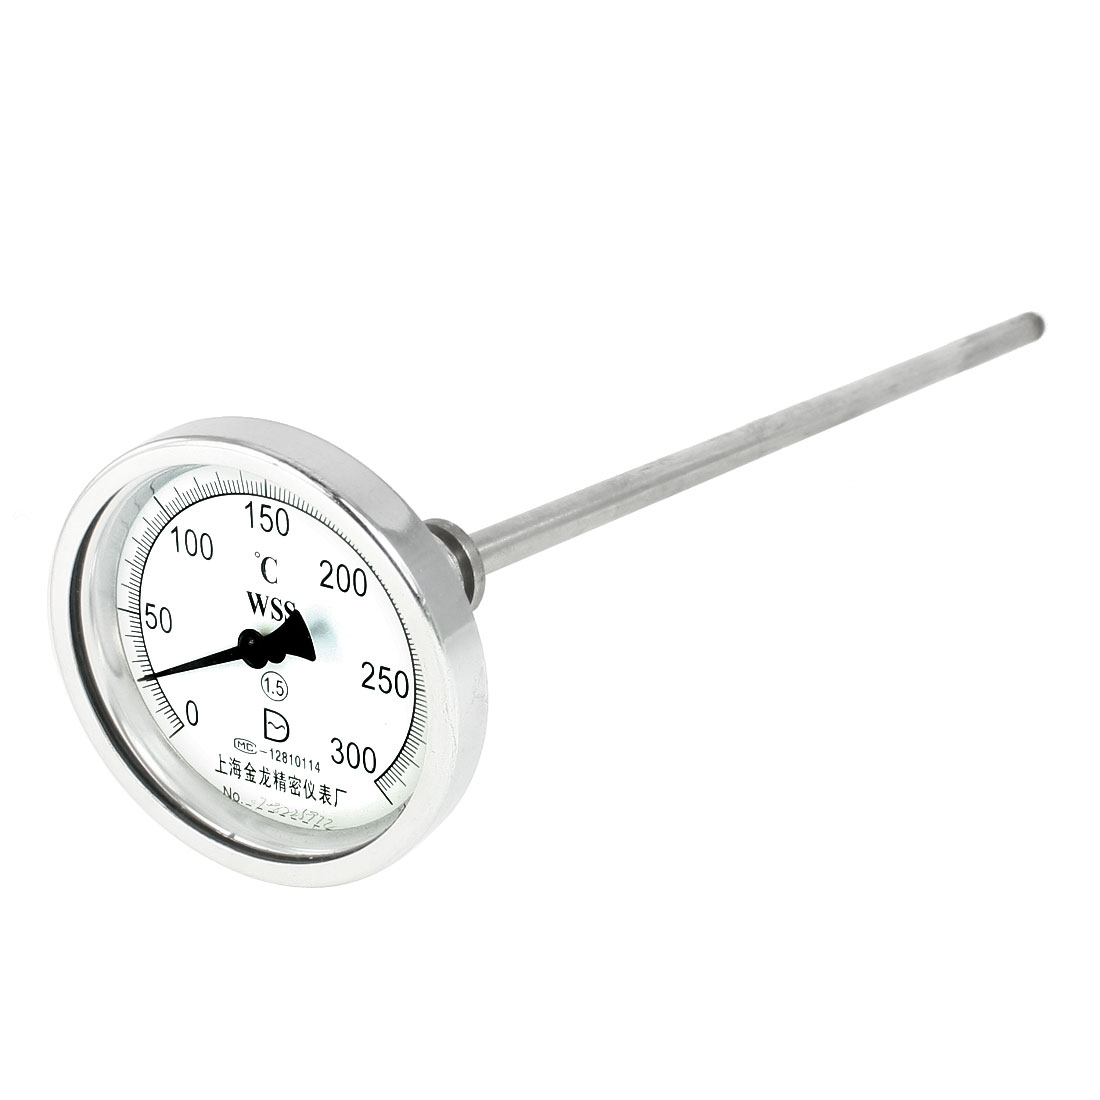 "3/4""PT Thread Diameter 0 to 300 Celsius Gauge Range Deep Fry Thermometer"